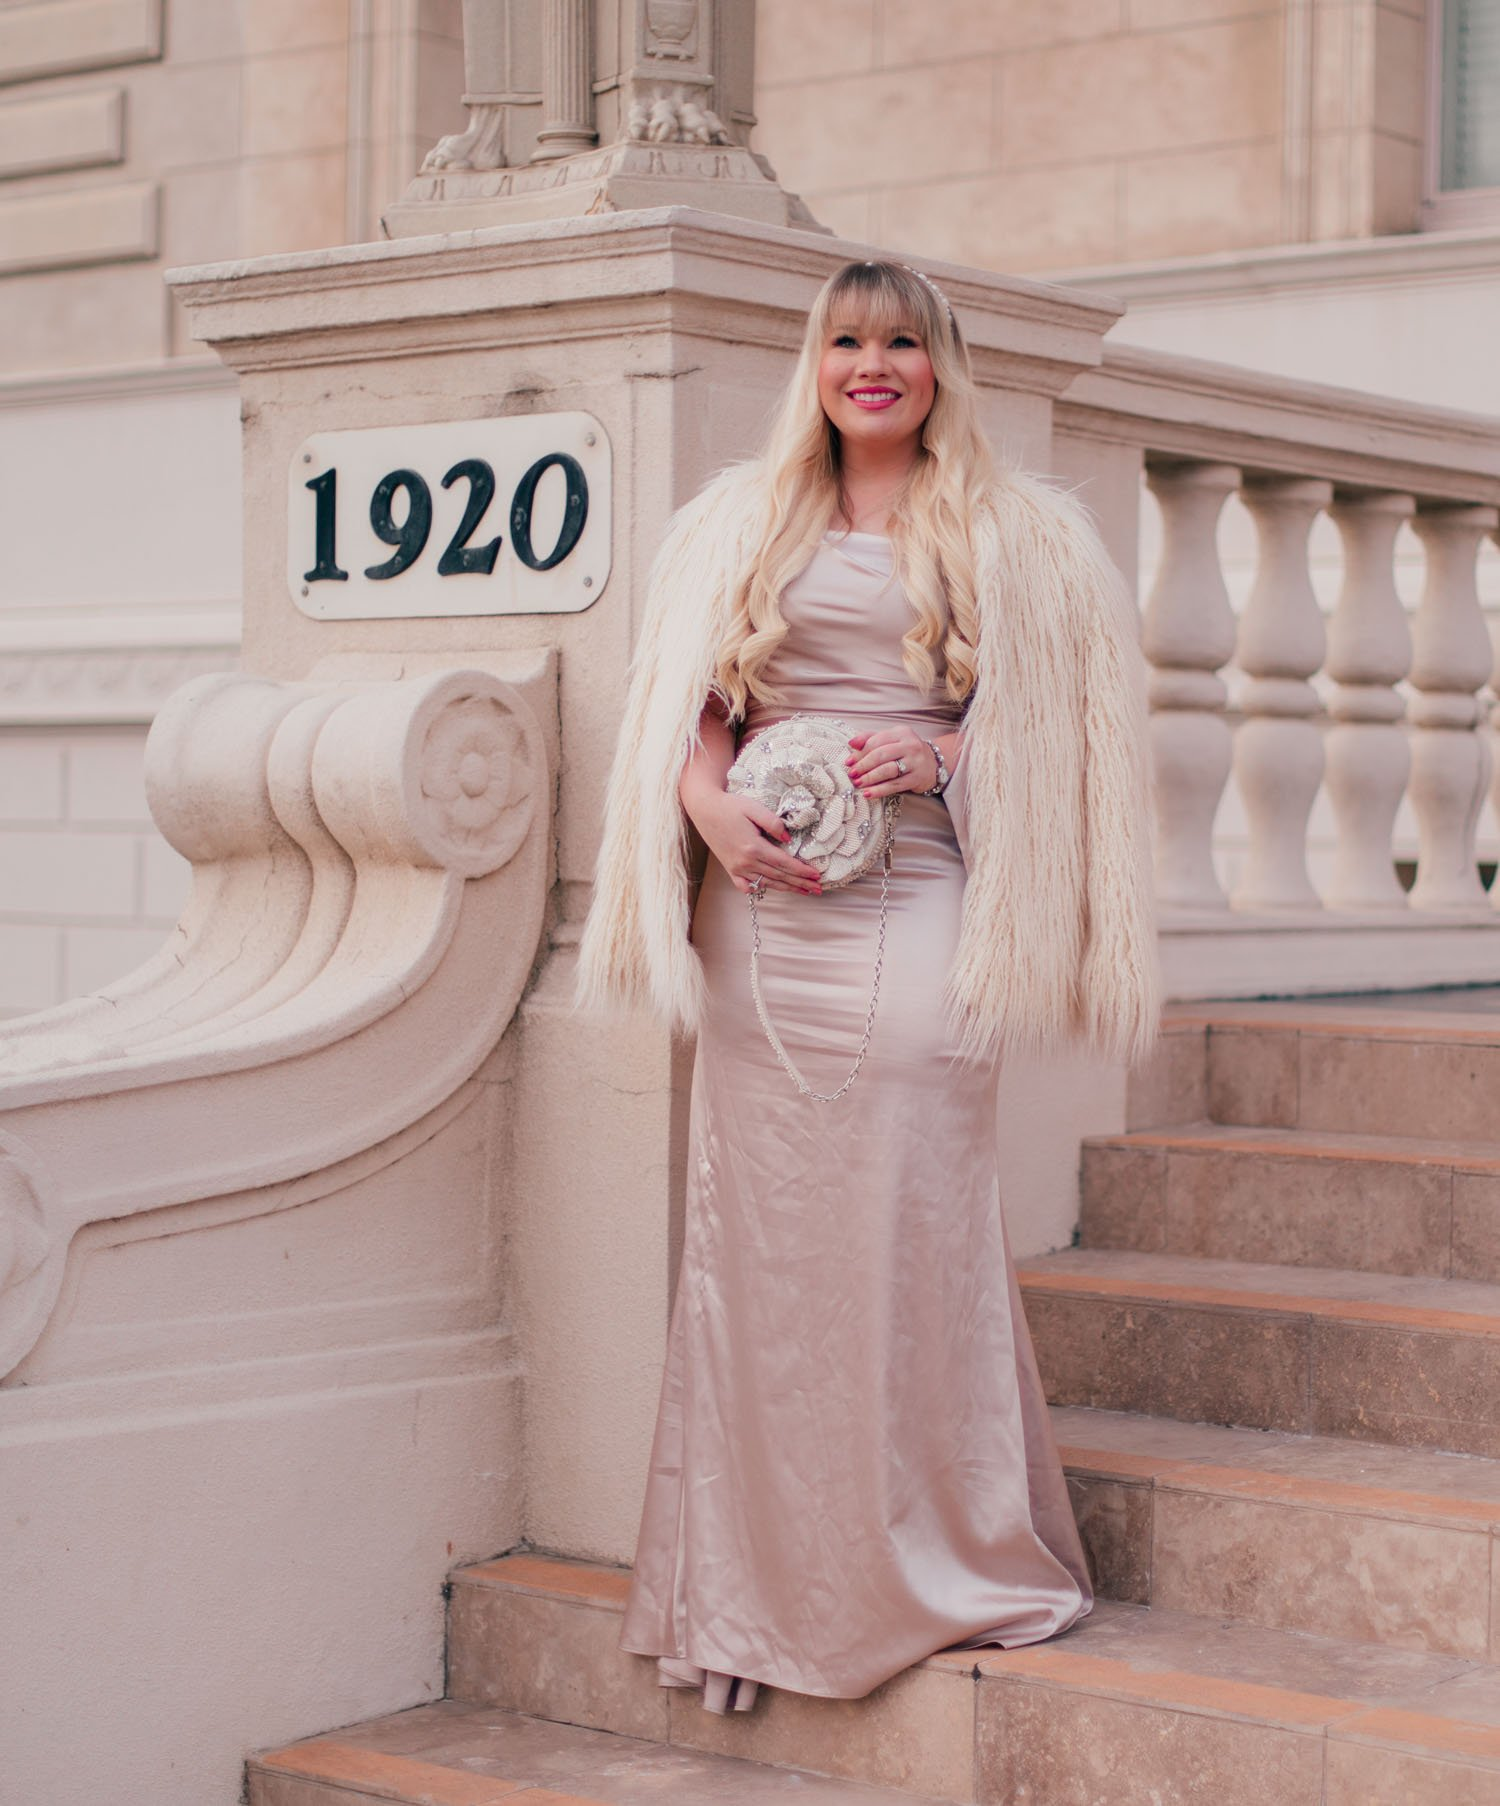 Elizabeth Hugen of Lizzie in Lace wears a glamorous New Years Eve outfit